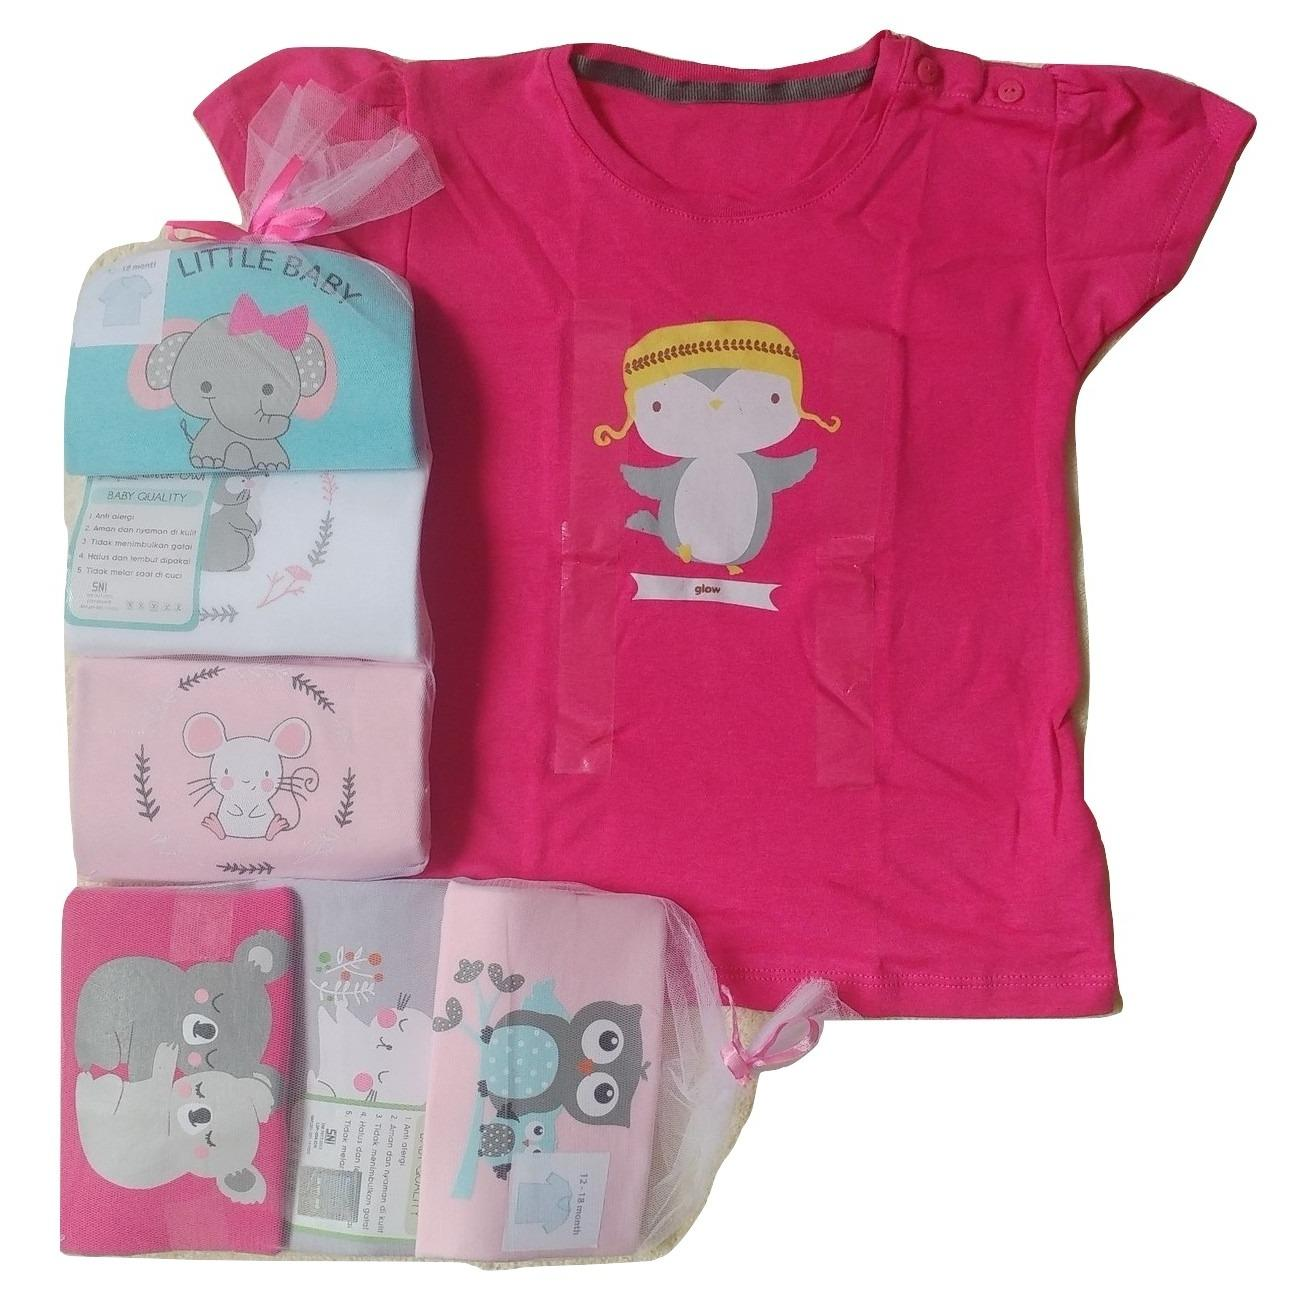 Jual Jelova Angela 3Pc Kaos Oblong Fashion Girls Baby Bayi 1 2 Years Mixmotif Random Branded Murah